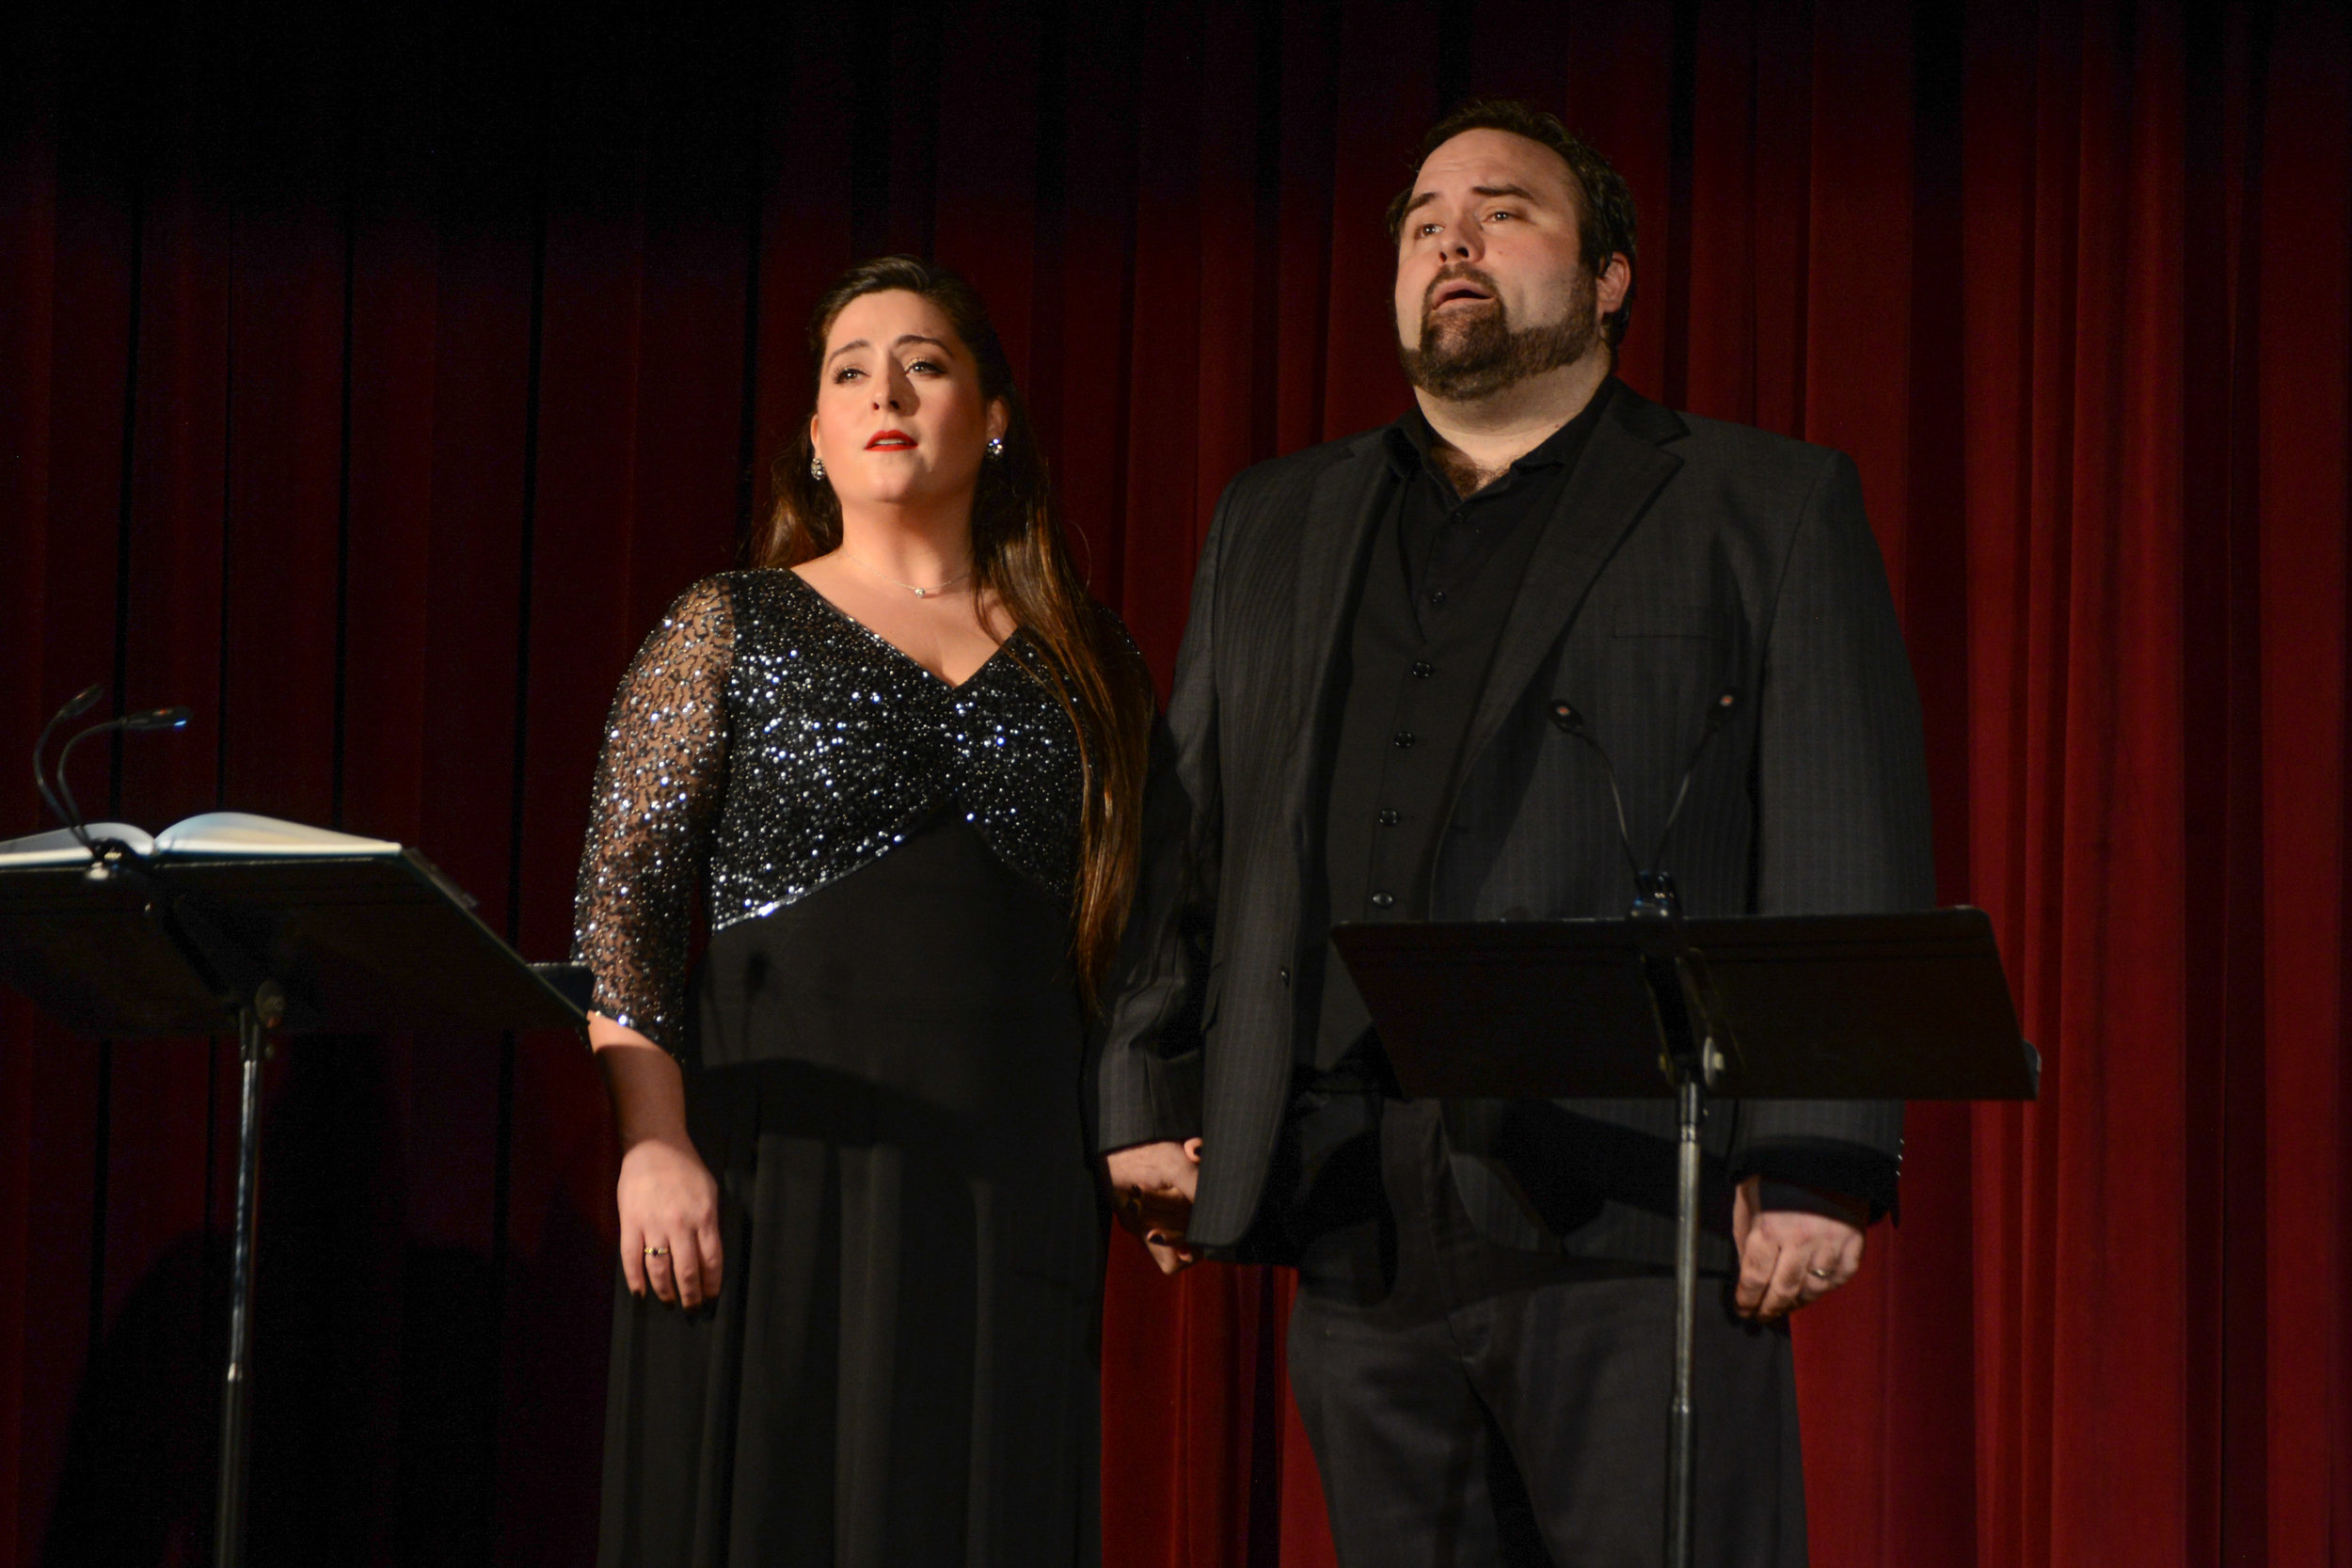 Victoria Cannizzo as Suzel and William Davenport as Fritz. Photo by Britt Olsen-Ecker; courtesy of Baltimore Concert Opera.